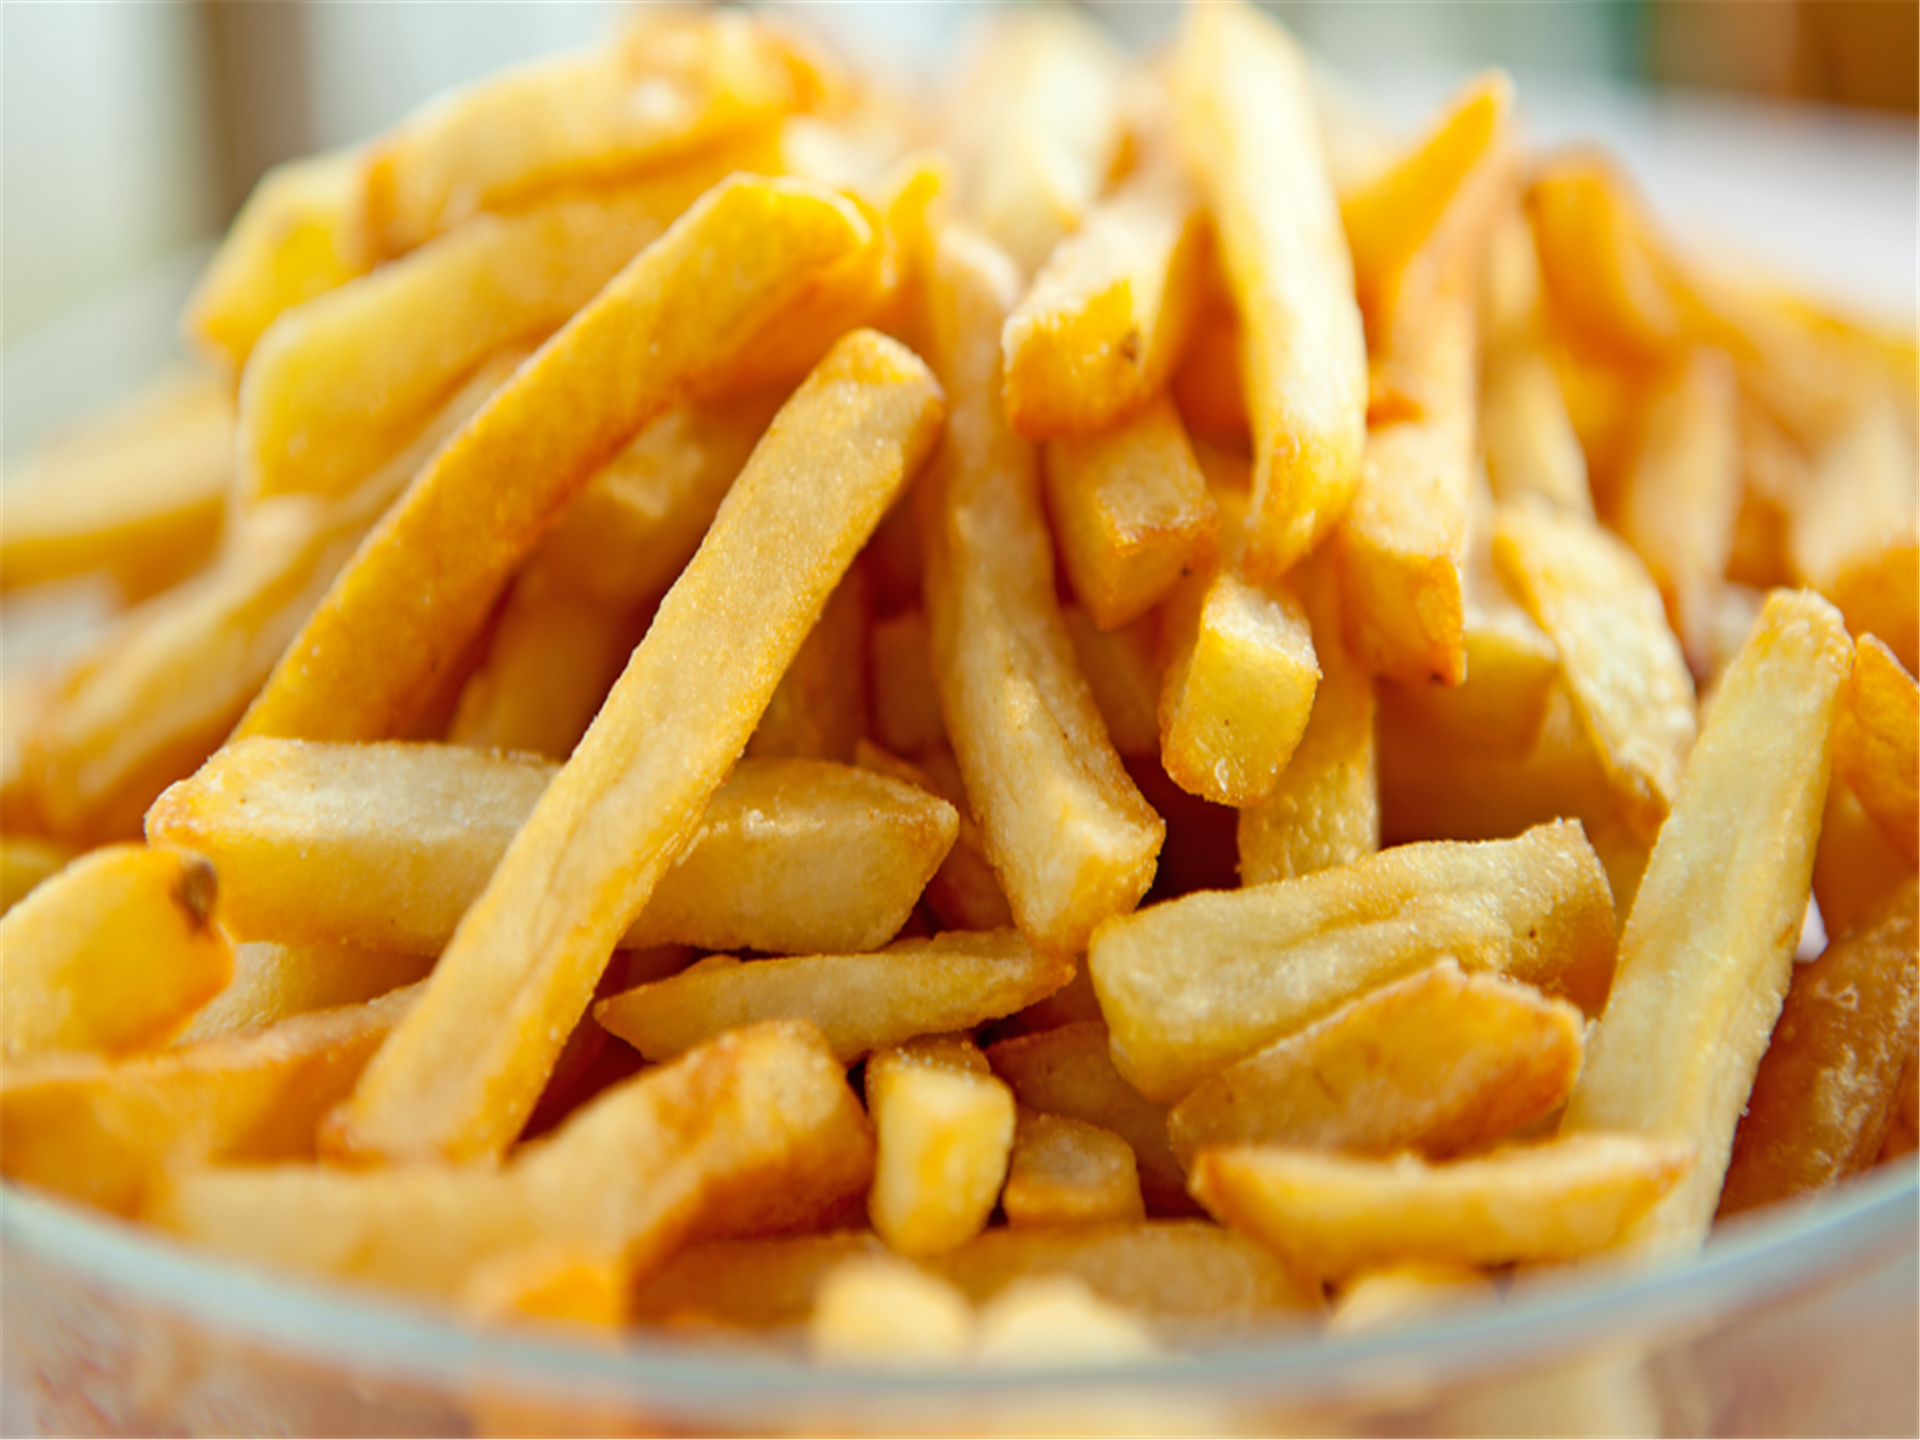 Pile of fries in bowl